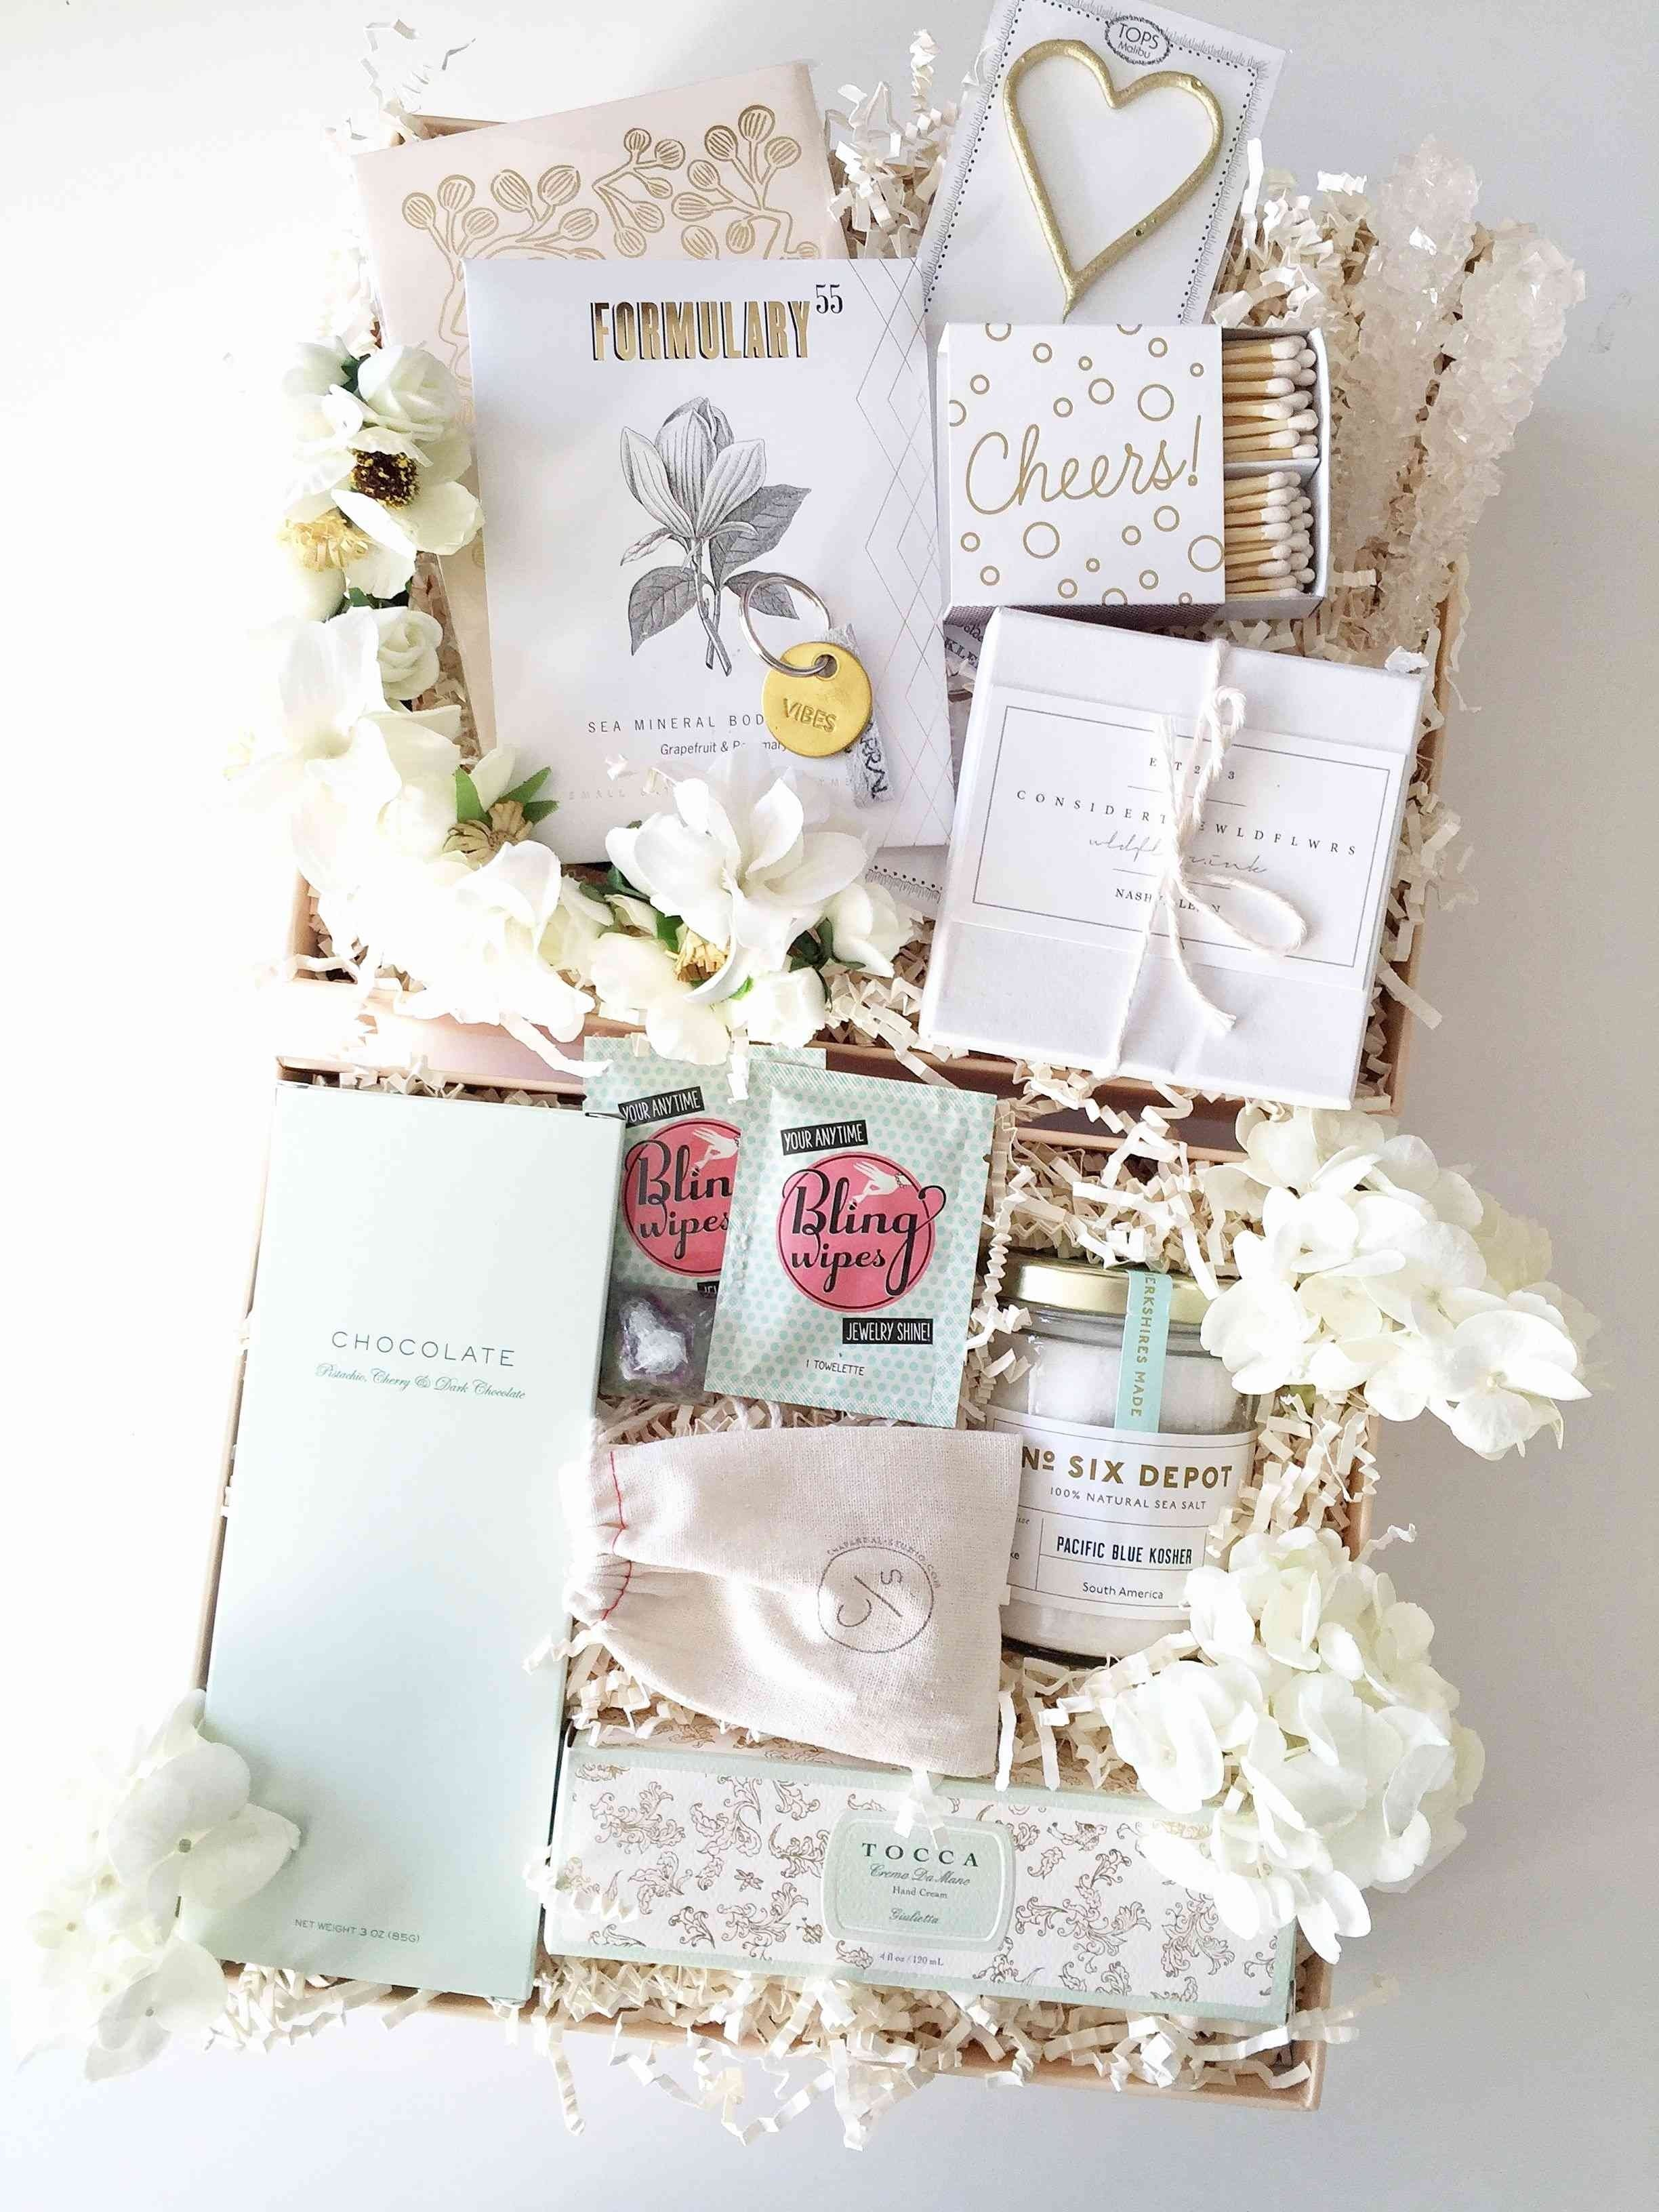 10 Lovable Gift Ideas For Family Members ideas for wedding gifts e art galleries in wedding gift ideas for